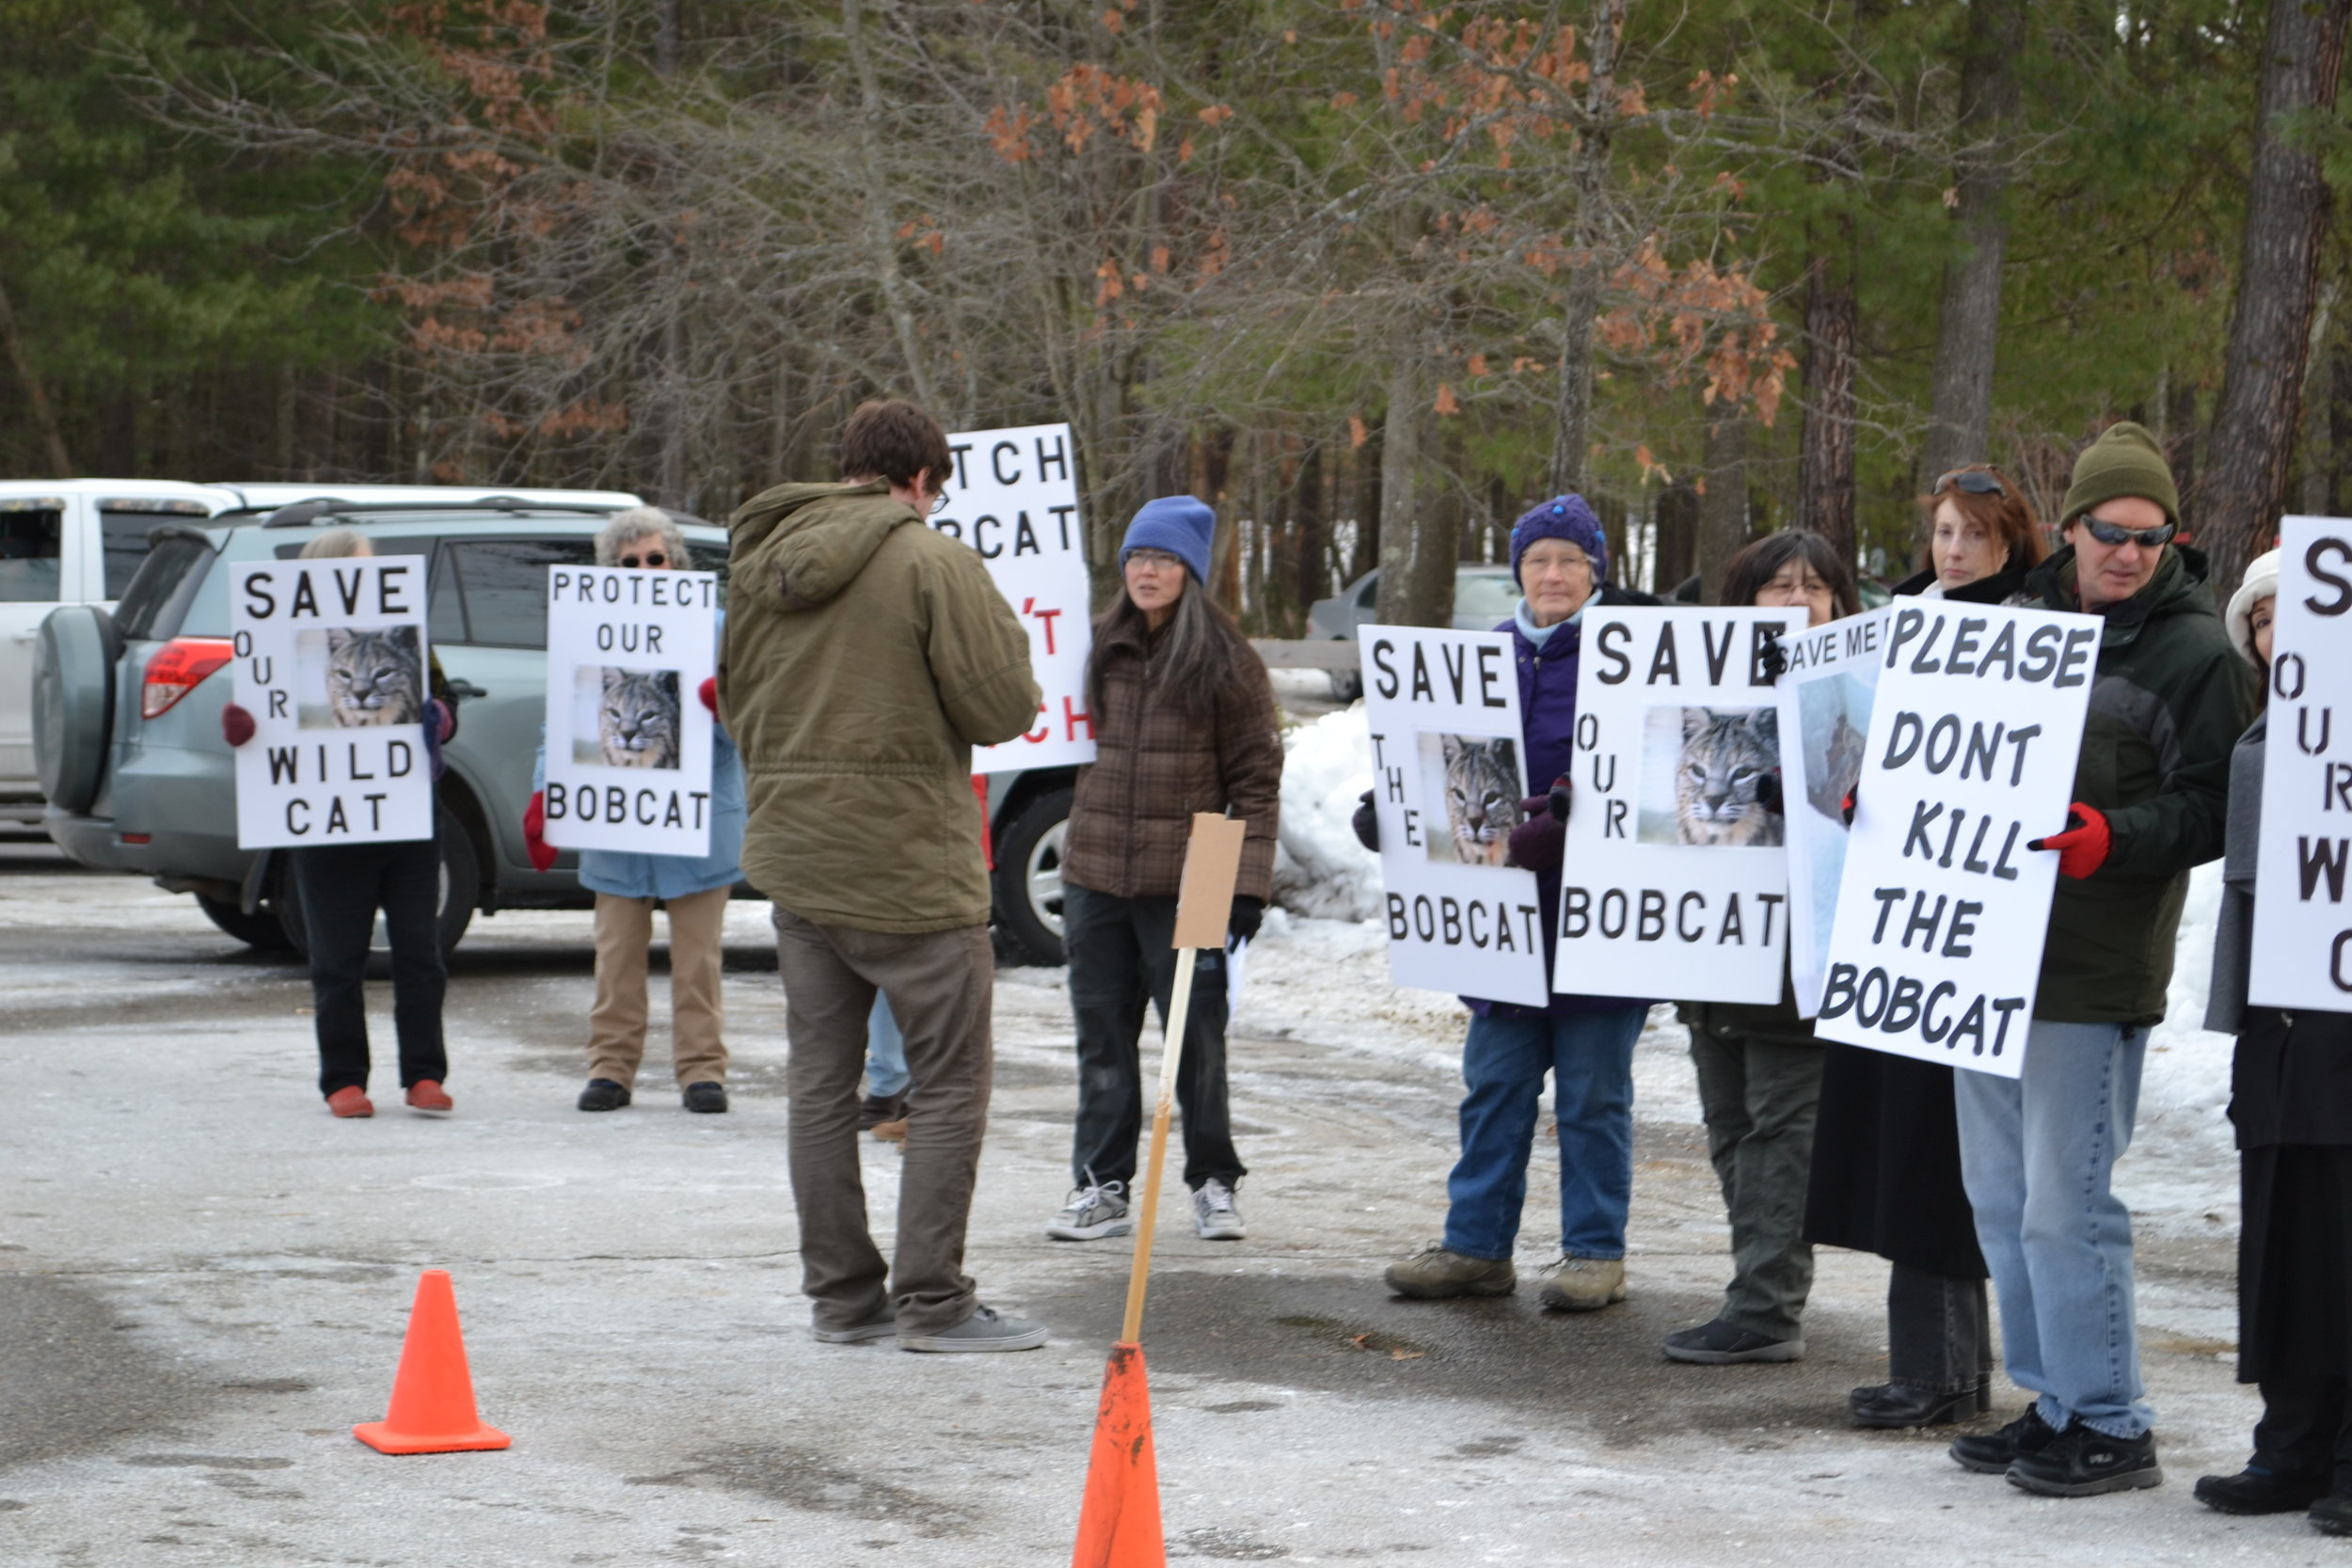 Protestors stand outside NH Fish & Game Headquarters during a NHFG Commission meeting on bobcat management.